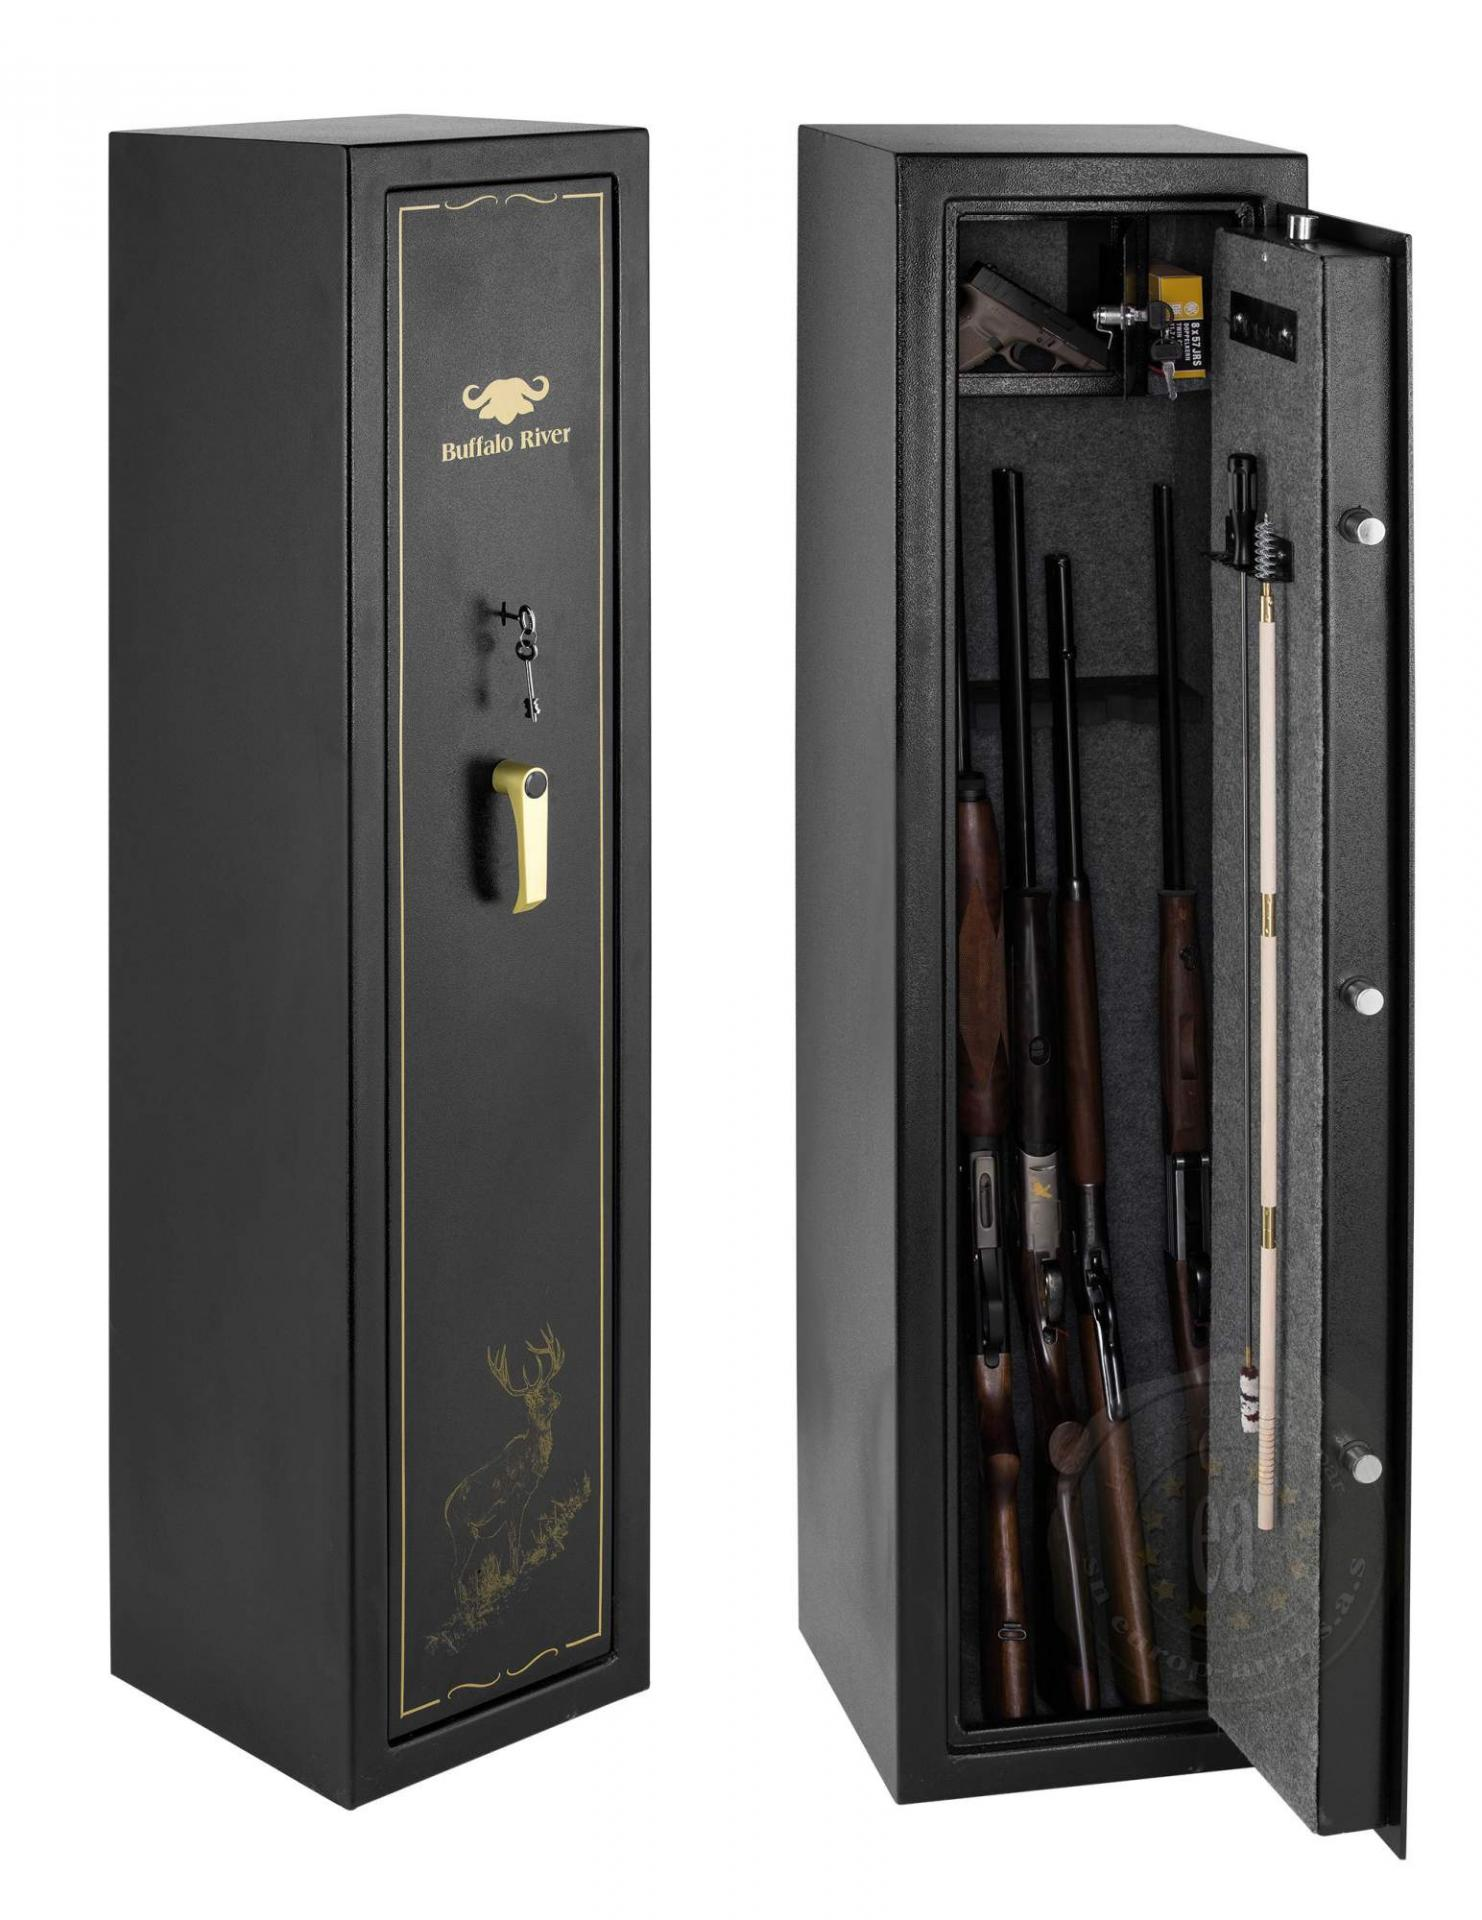 coffre fort 7 armes fusil carabine de chasse buffalo river. Black Bedroom Furniture Sets. Home Design Ideas